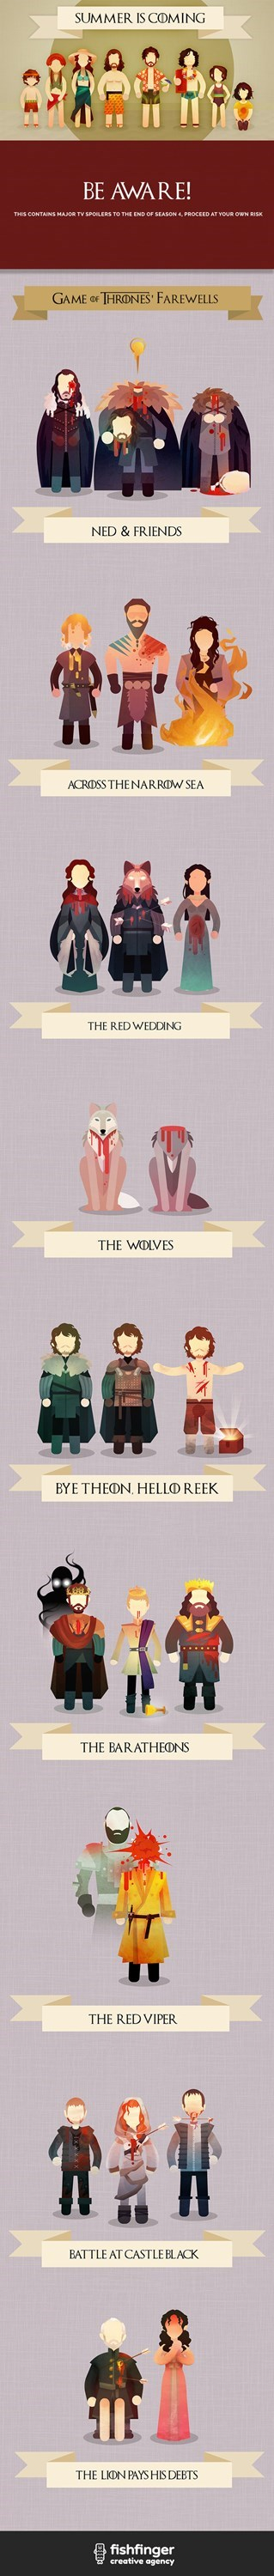 deaths,Game of Thrones,season 4